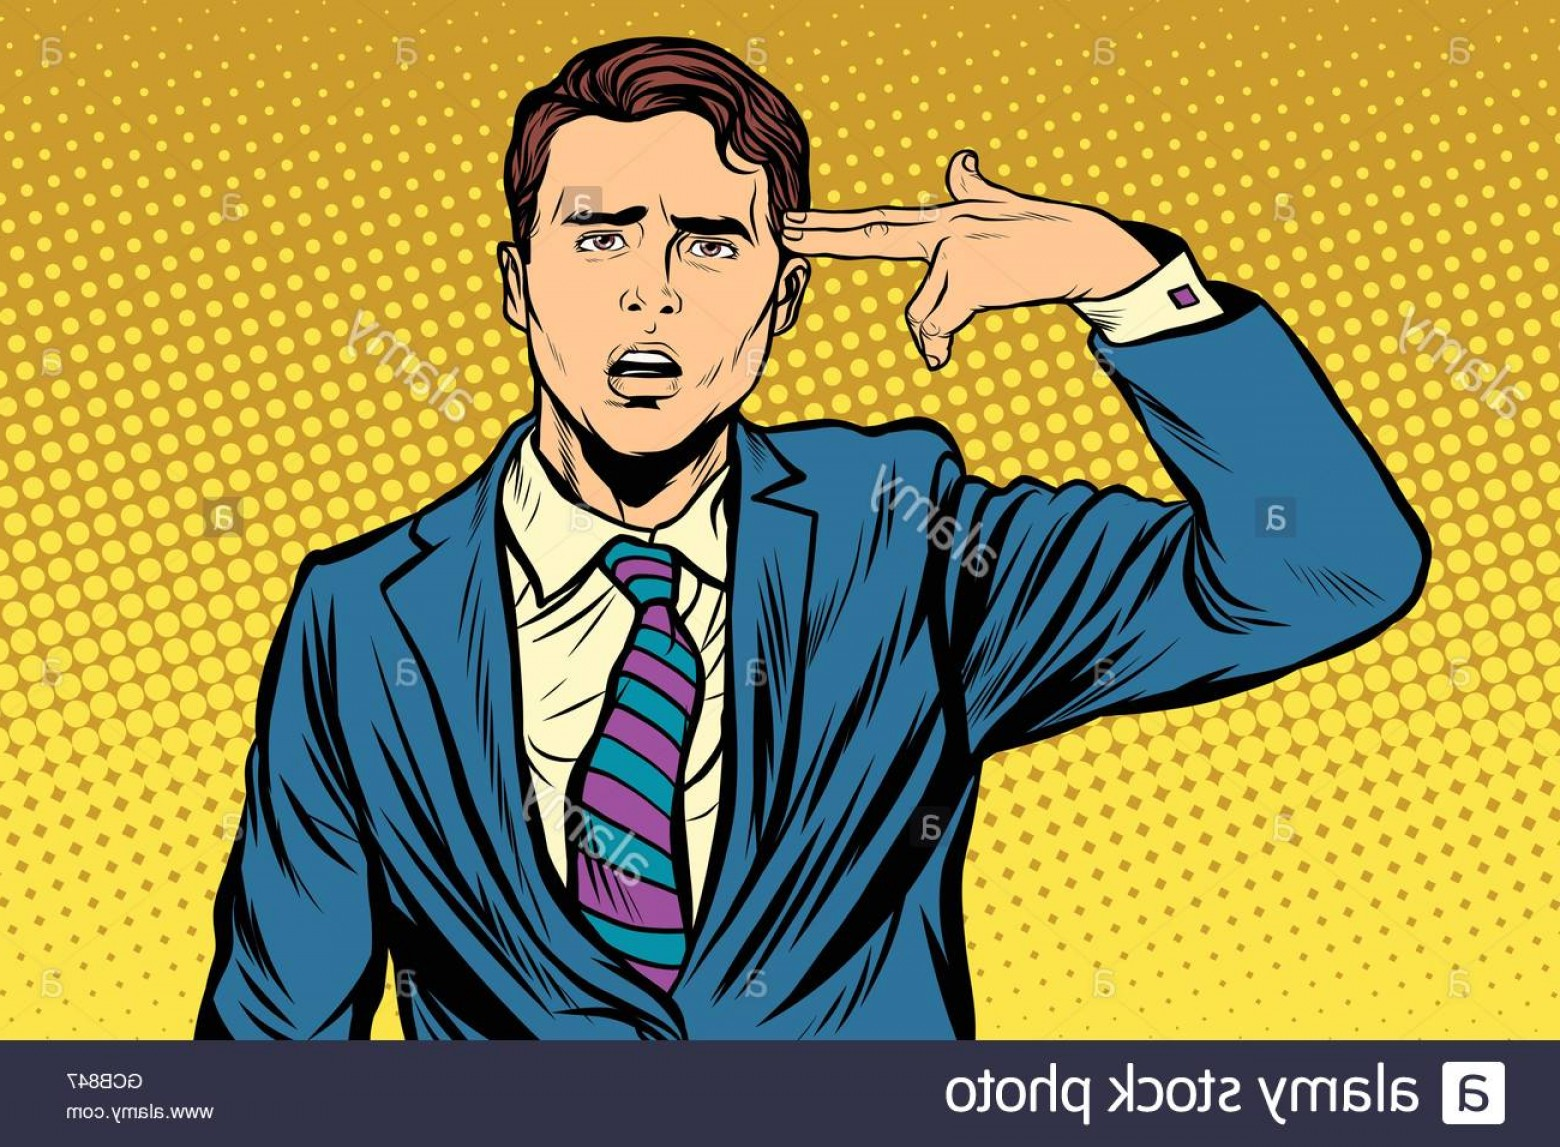 Finger Gun To Head Vector: Stock Photo Portrait Of Man Making Gun Gesture To The Head